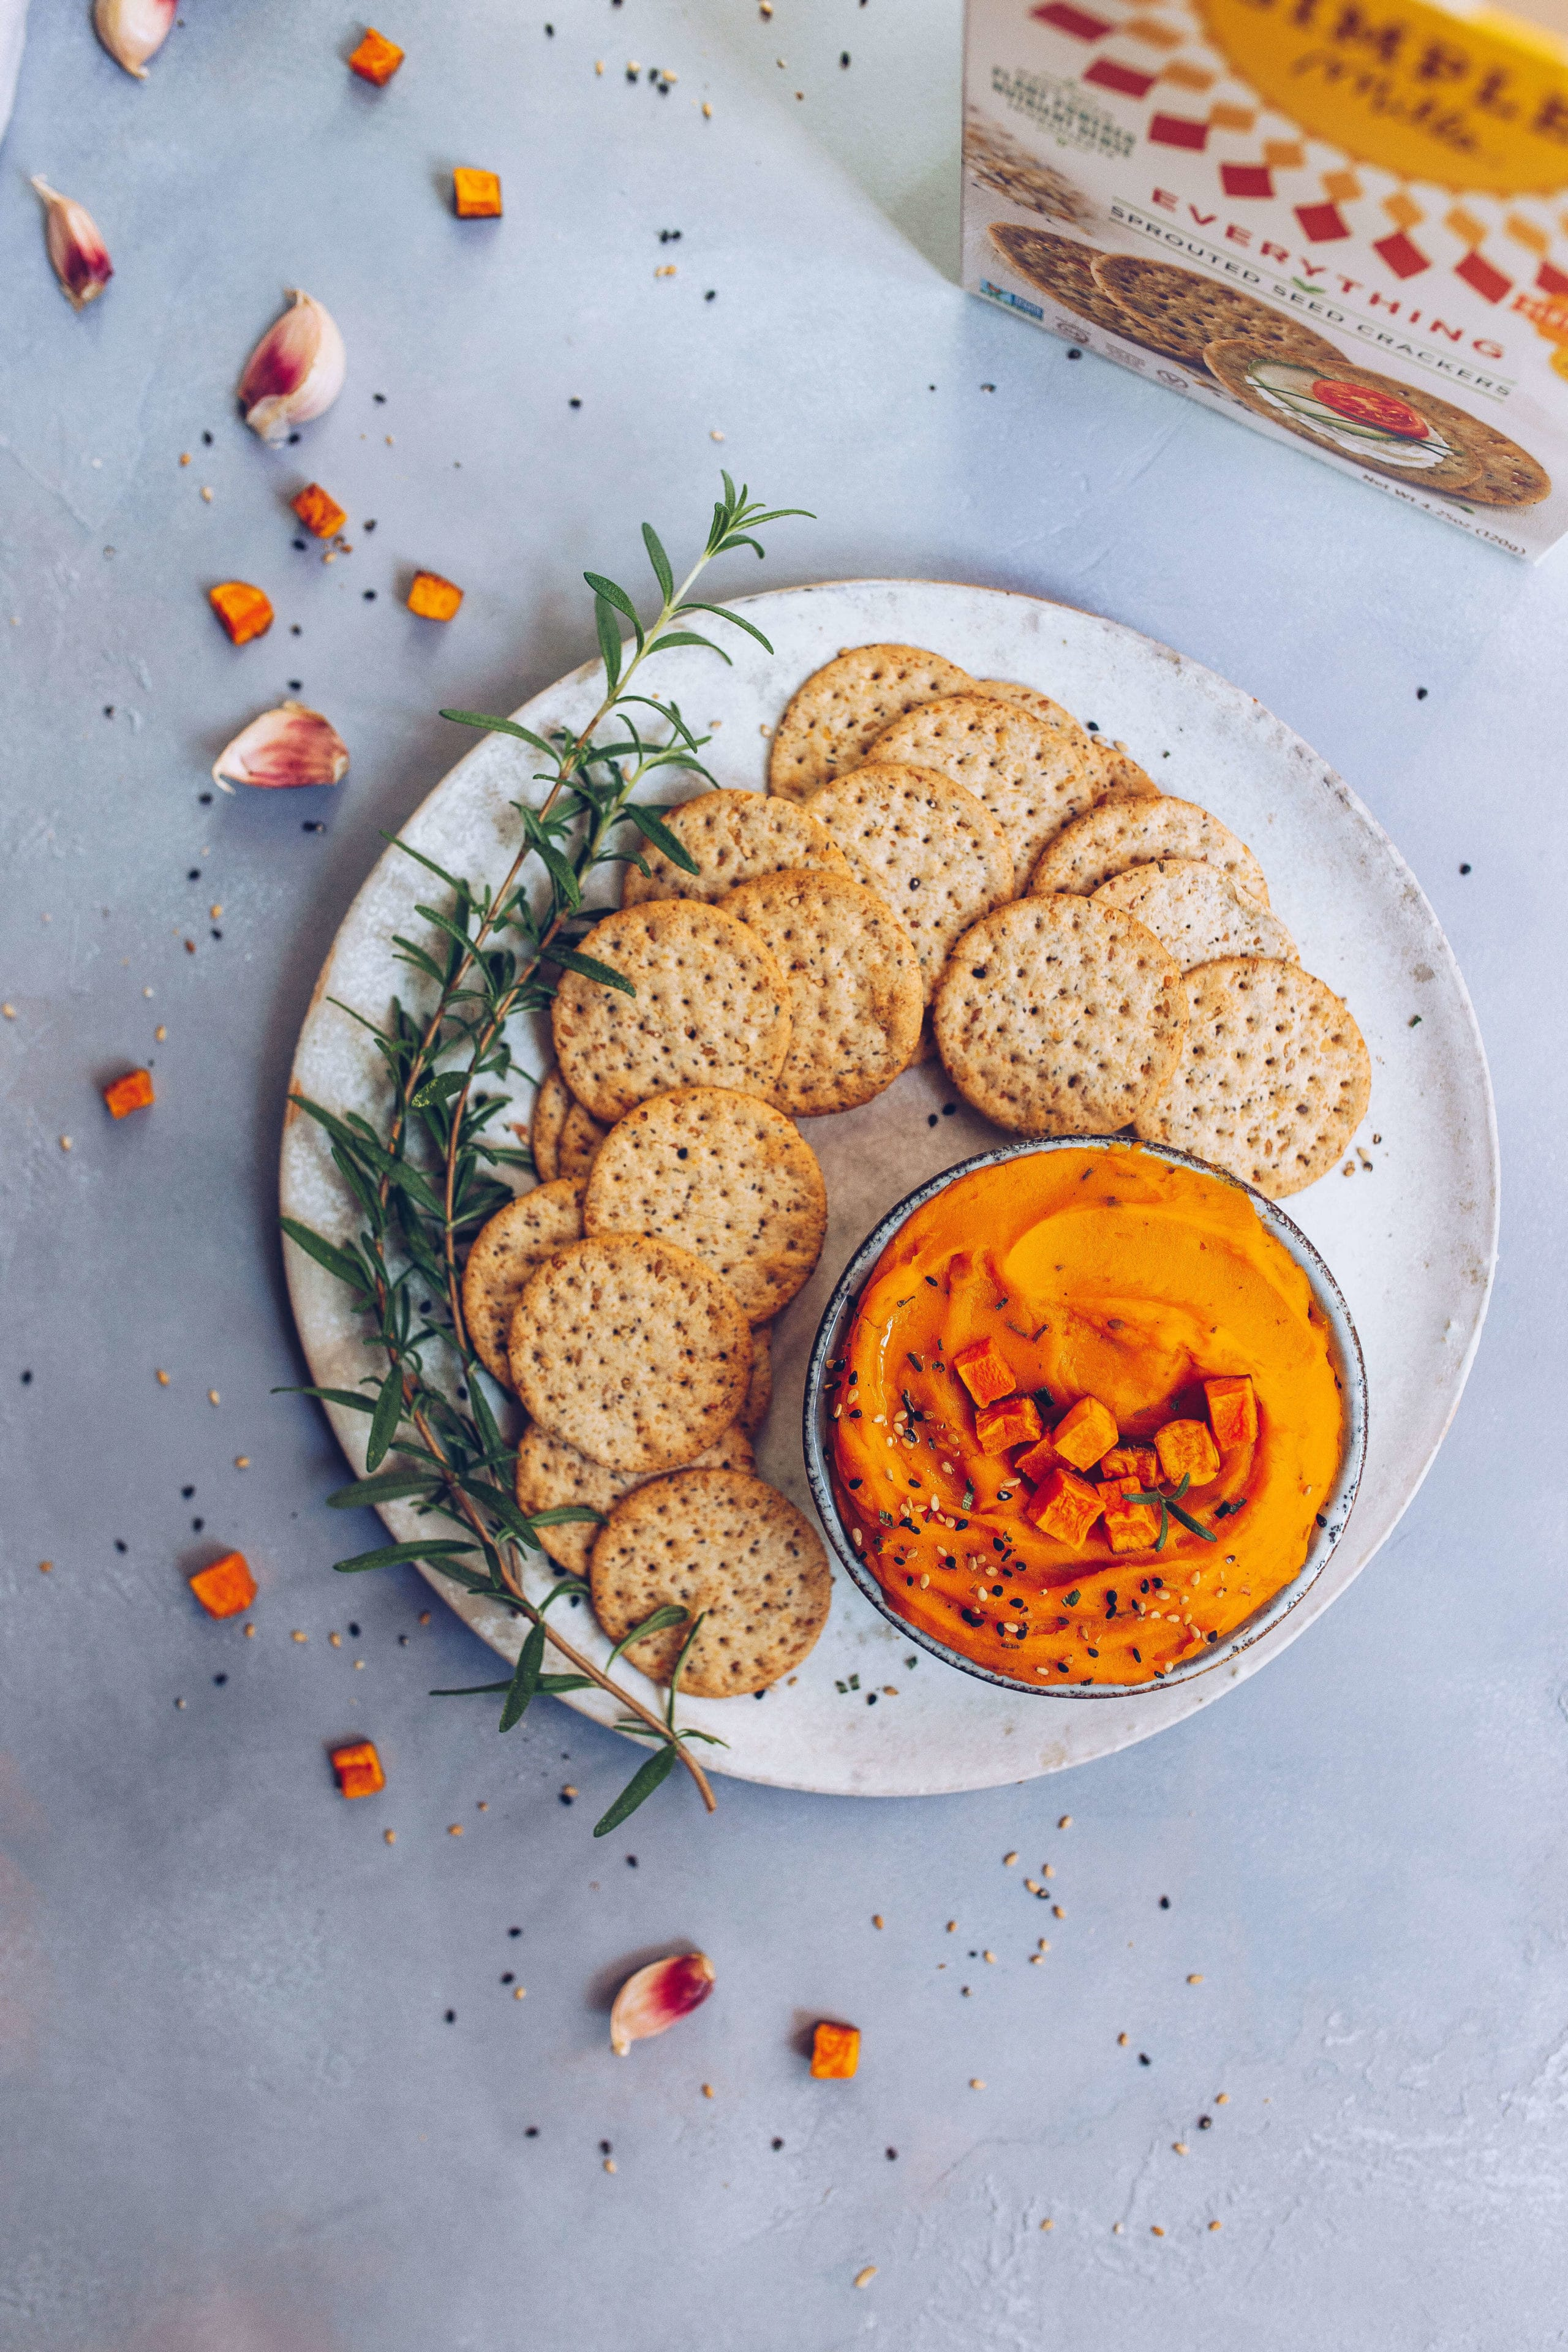 Roasted Garlic & Butternut Squash Dip (paleo, AIP-friendly) via Food by Mars